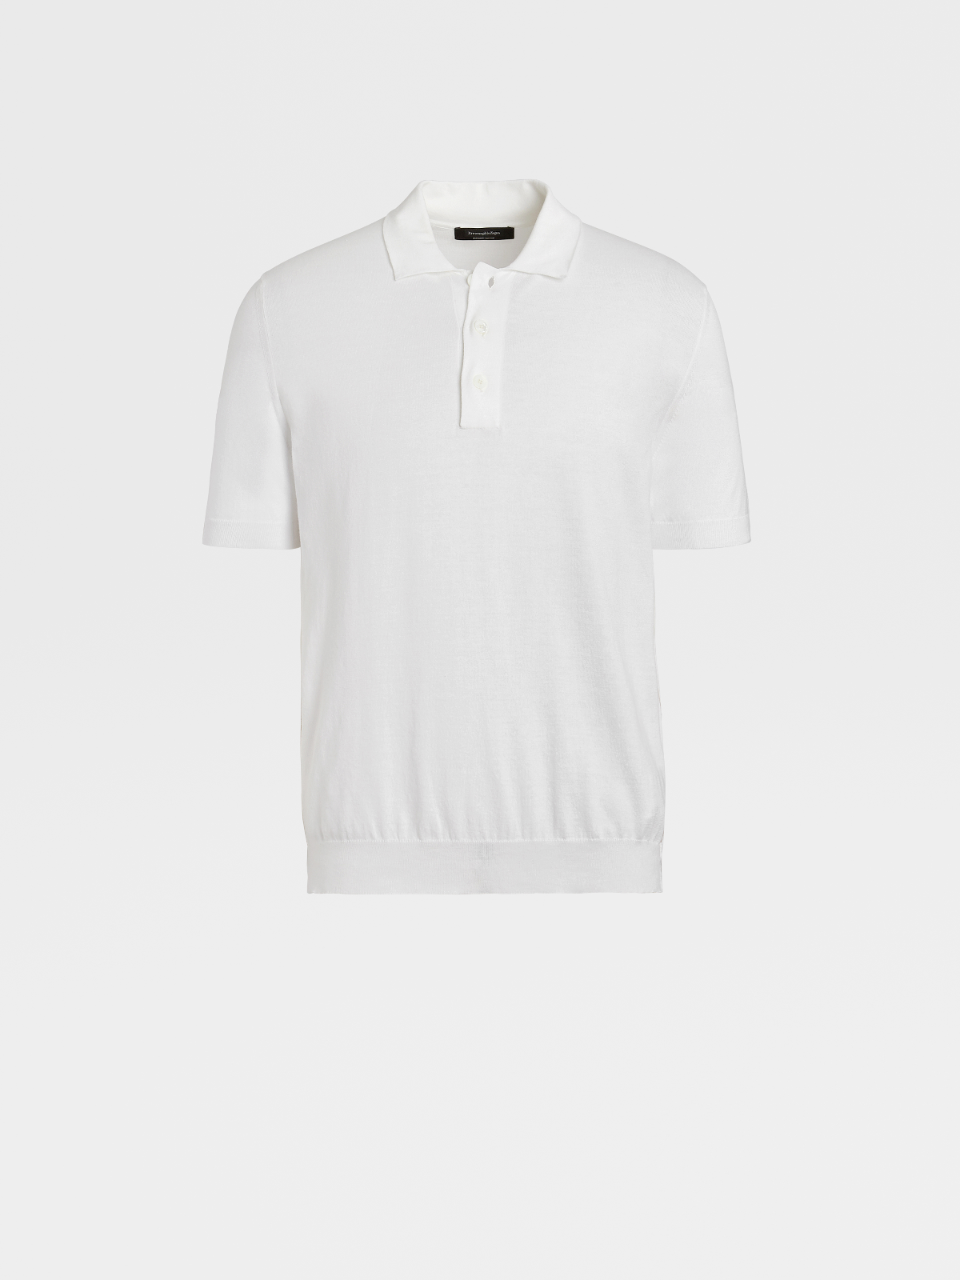 Cotton Knit Polo